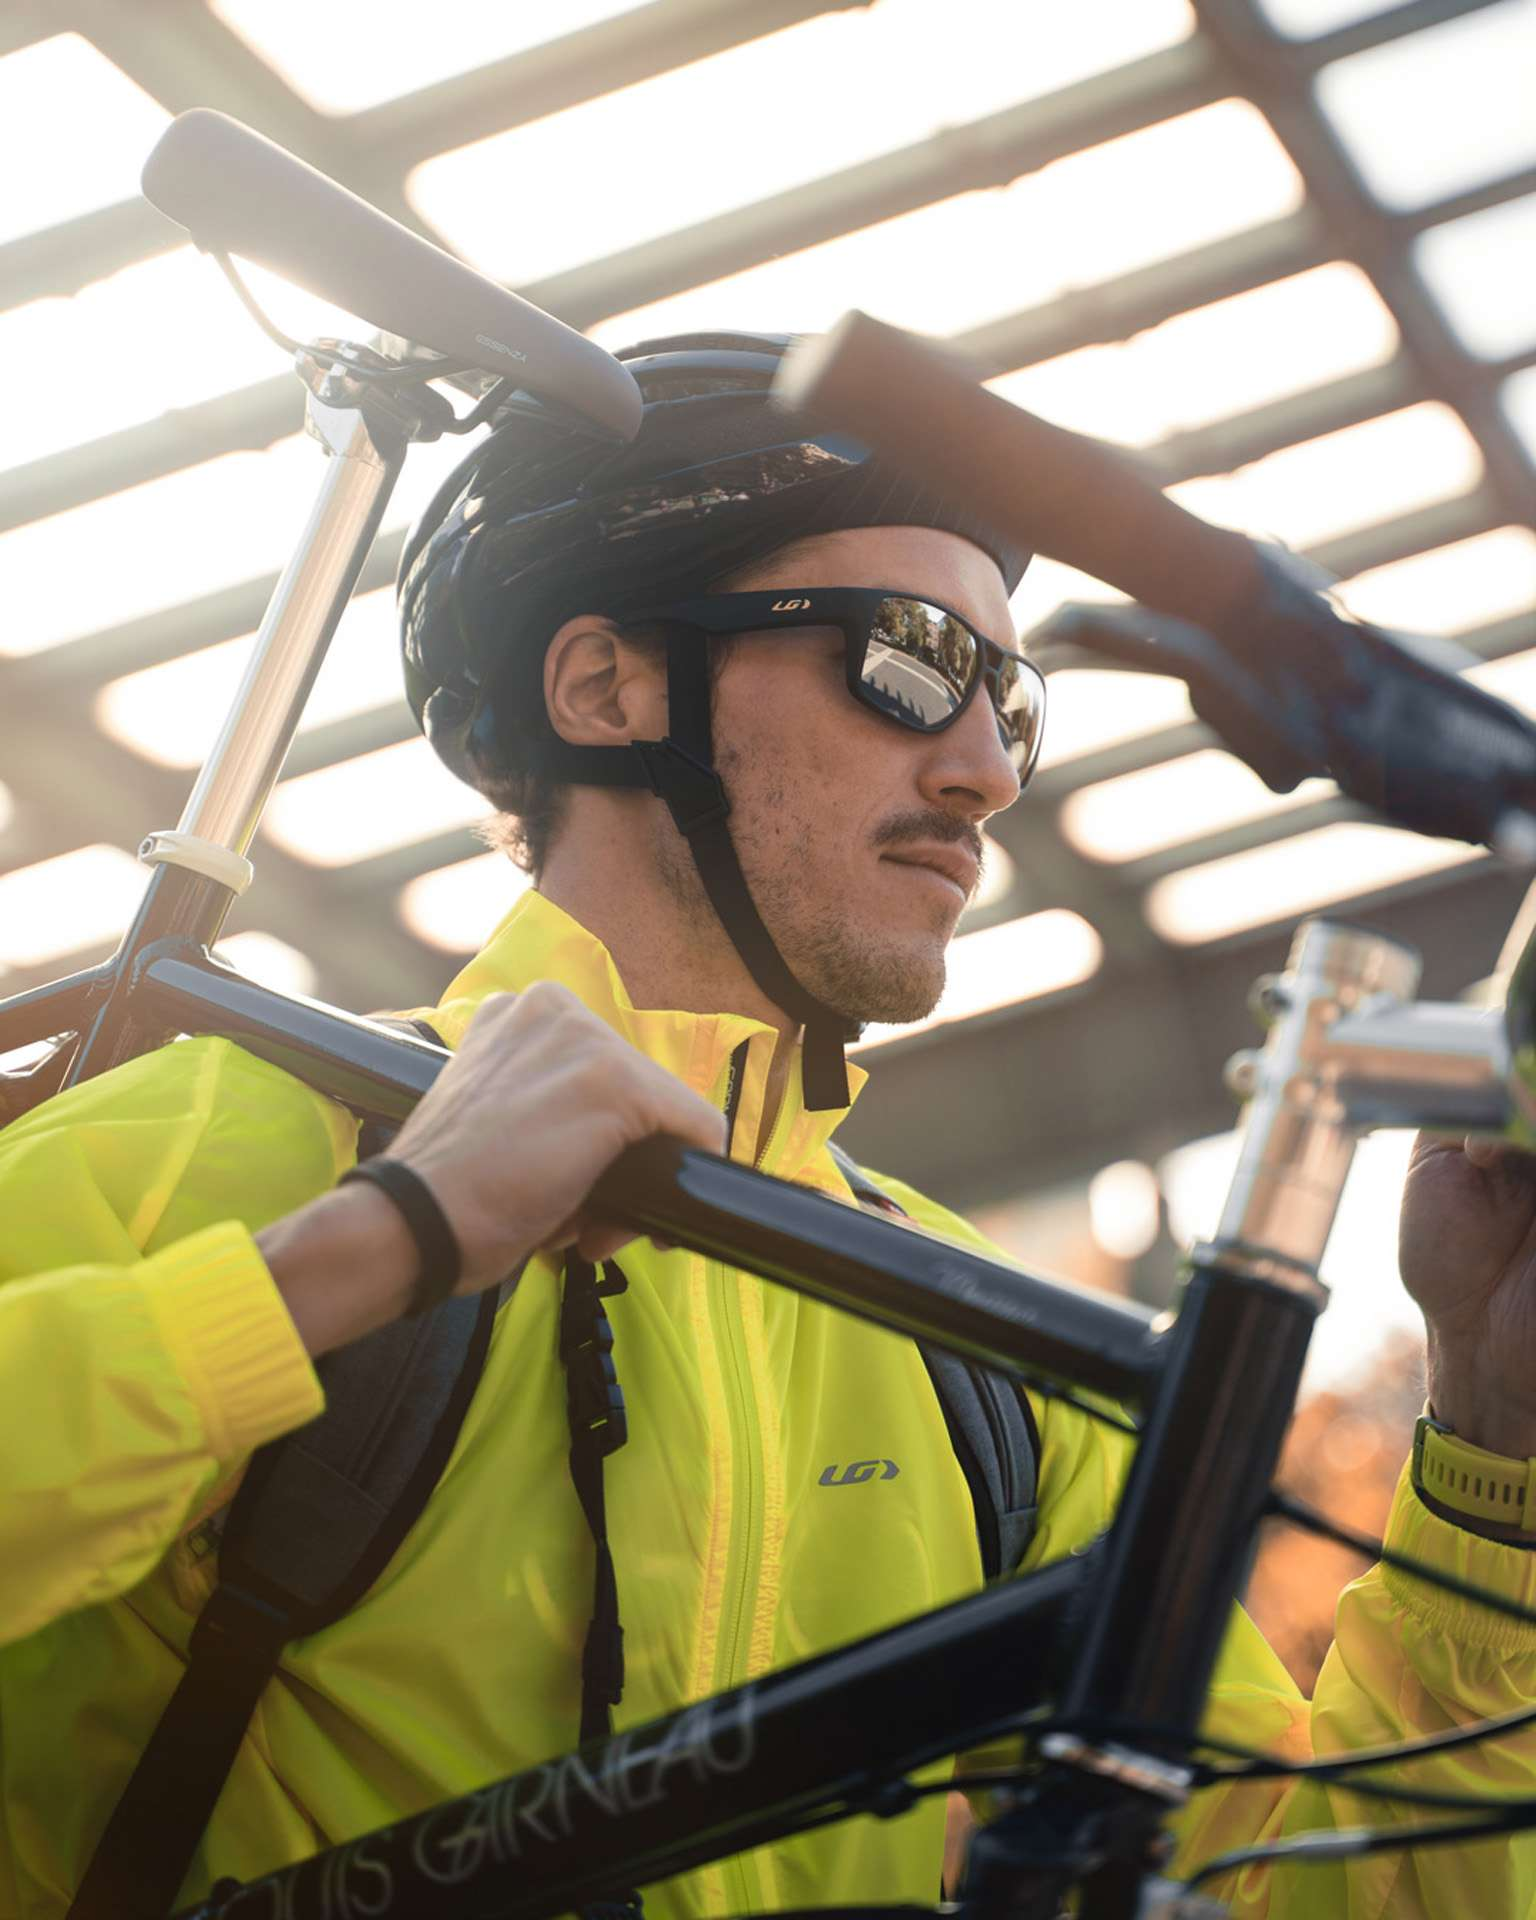 male model wearing bike helmet with neon yellow jacket holding a bike over his shoulder for Spring Summer 2020 campaign of Louis Garneau with artistic direction and styling by Studio TB